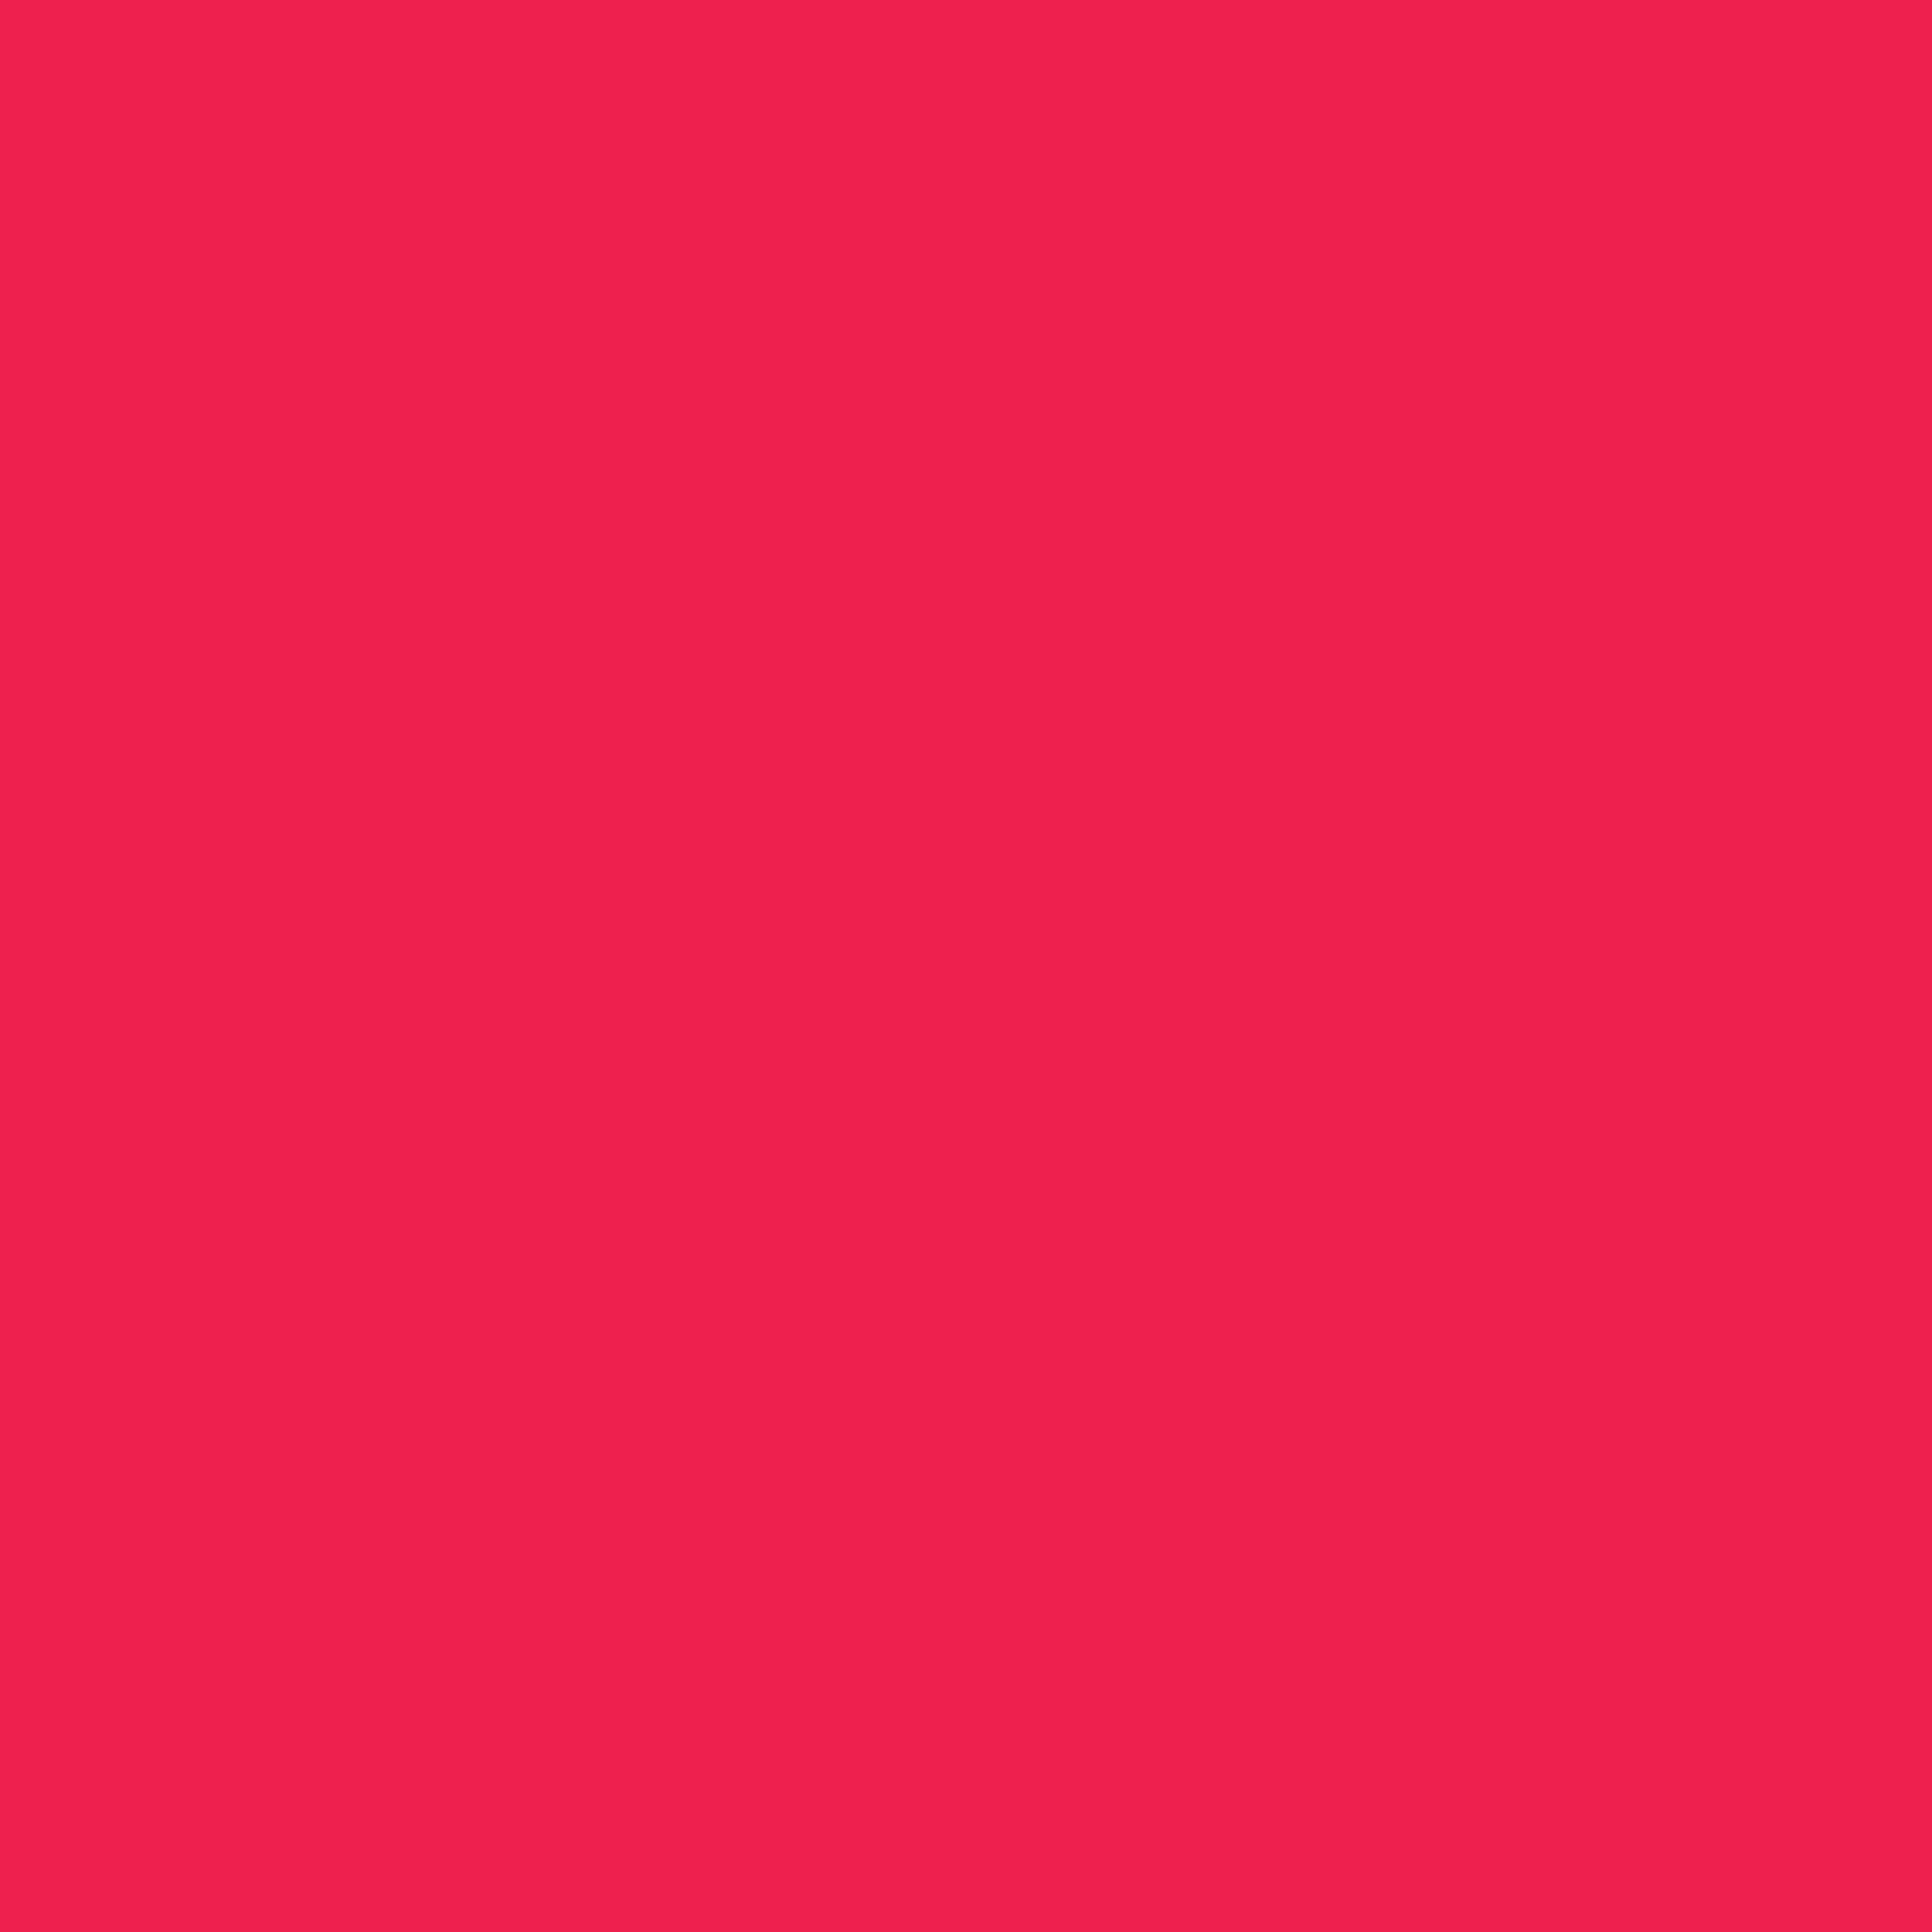 2048x2048 Red Crayola Solid Color Background